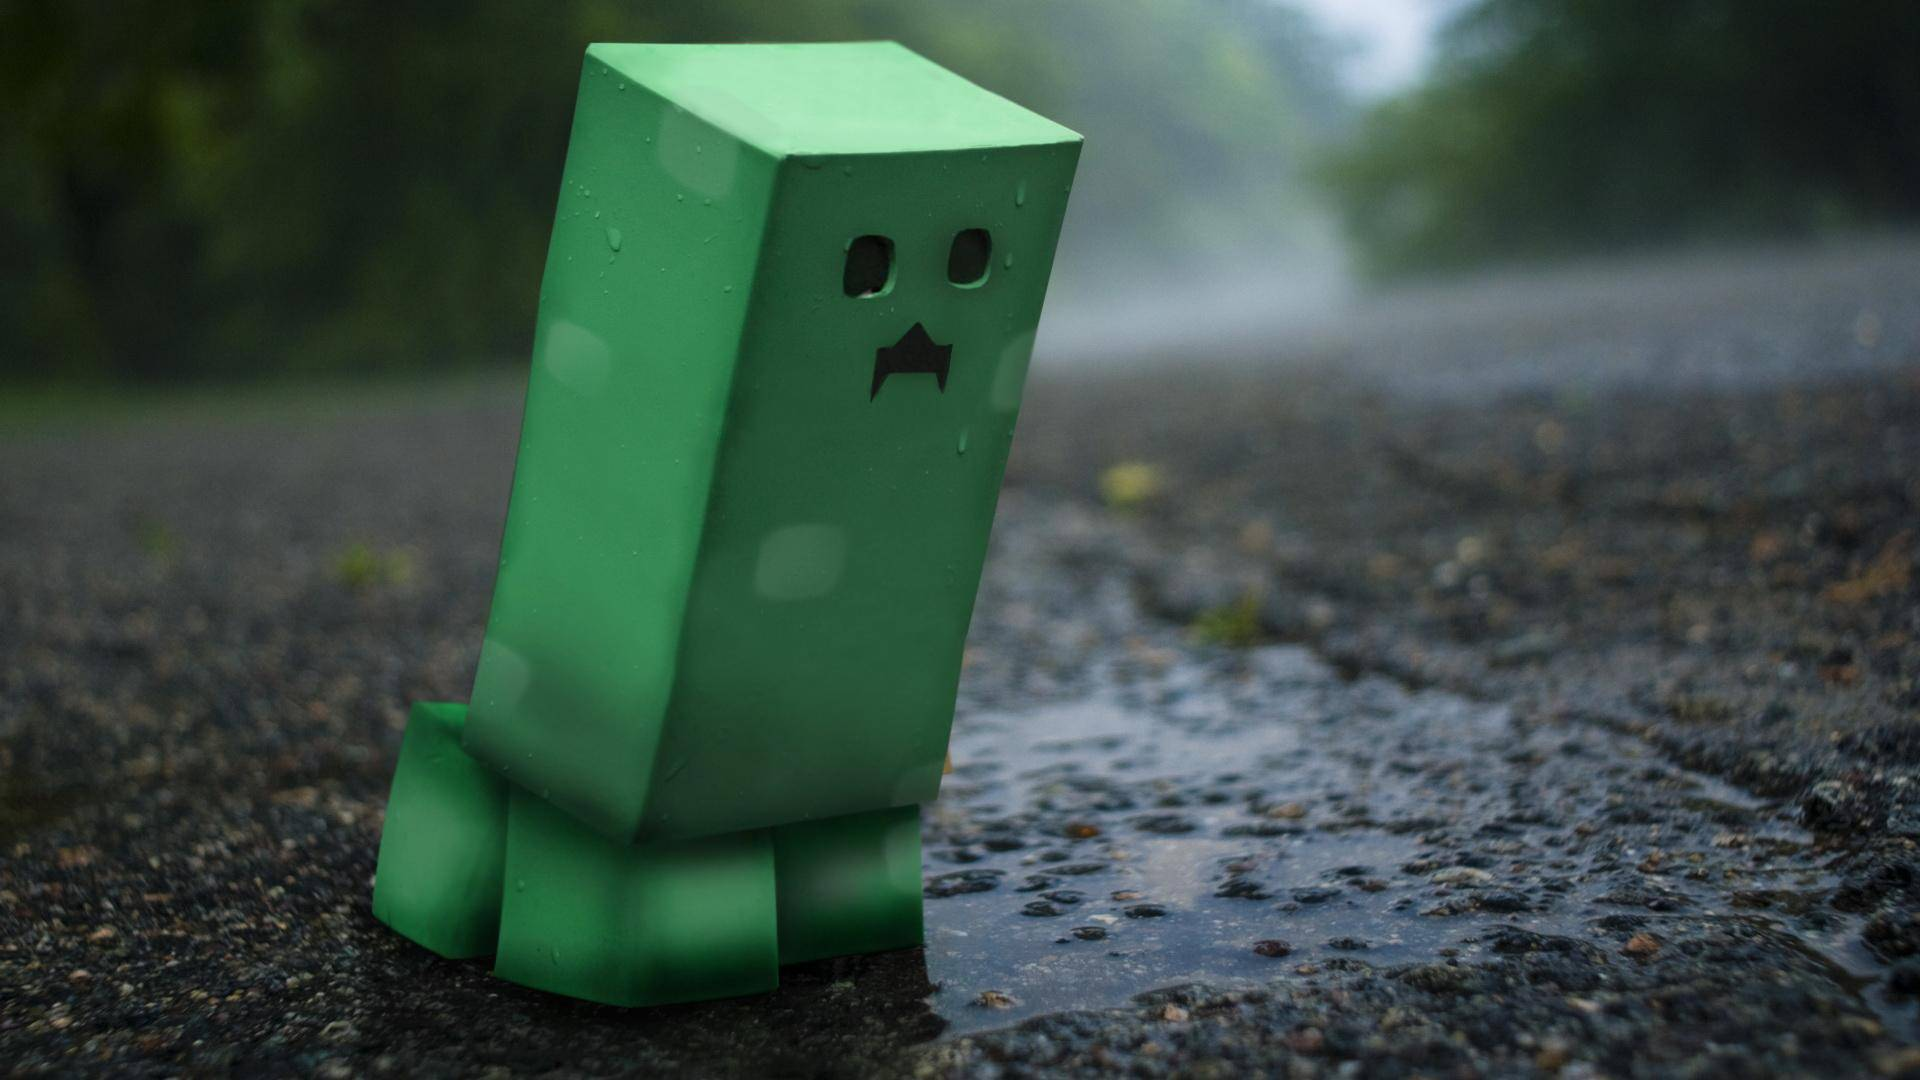 Funny Minecraft Backgrounds For Desktop DiyMidcom 1920x1080